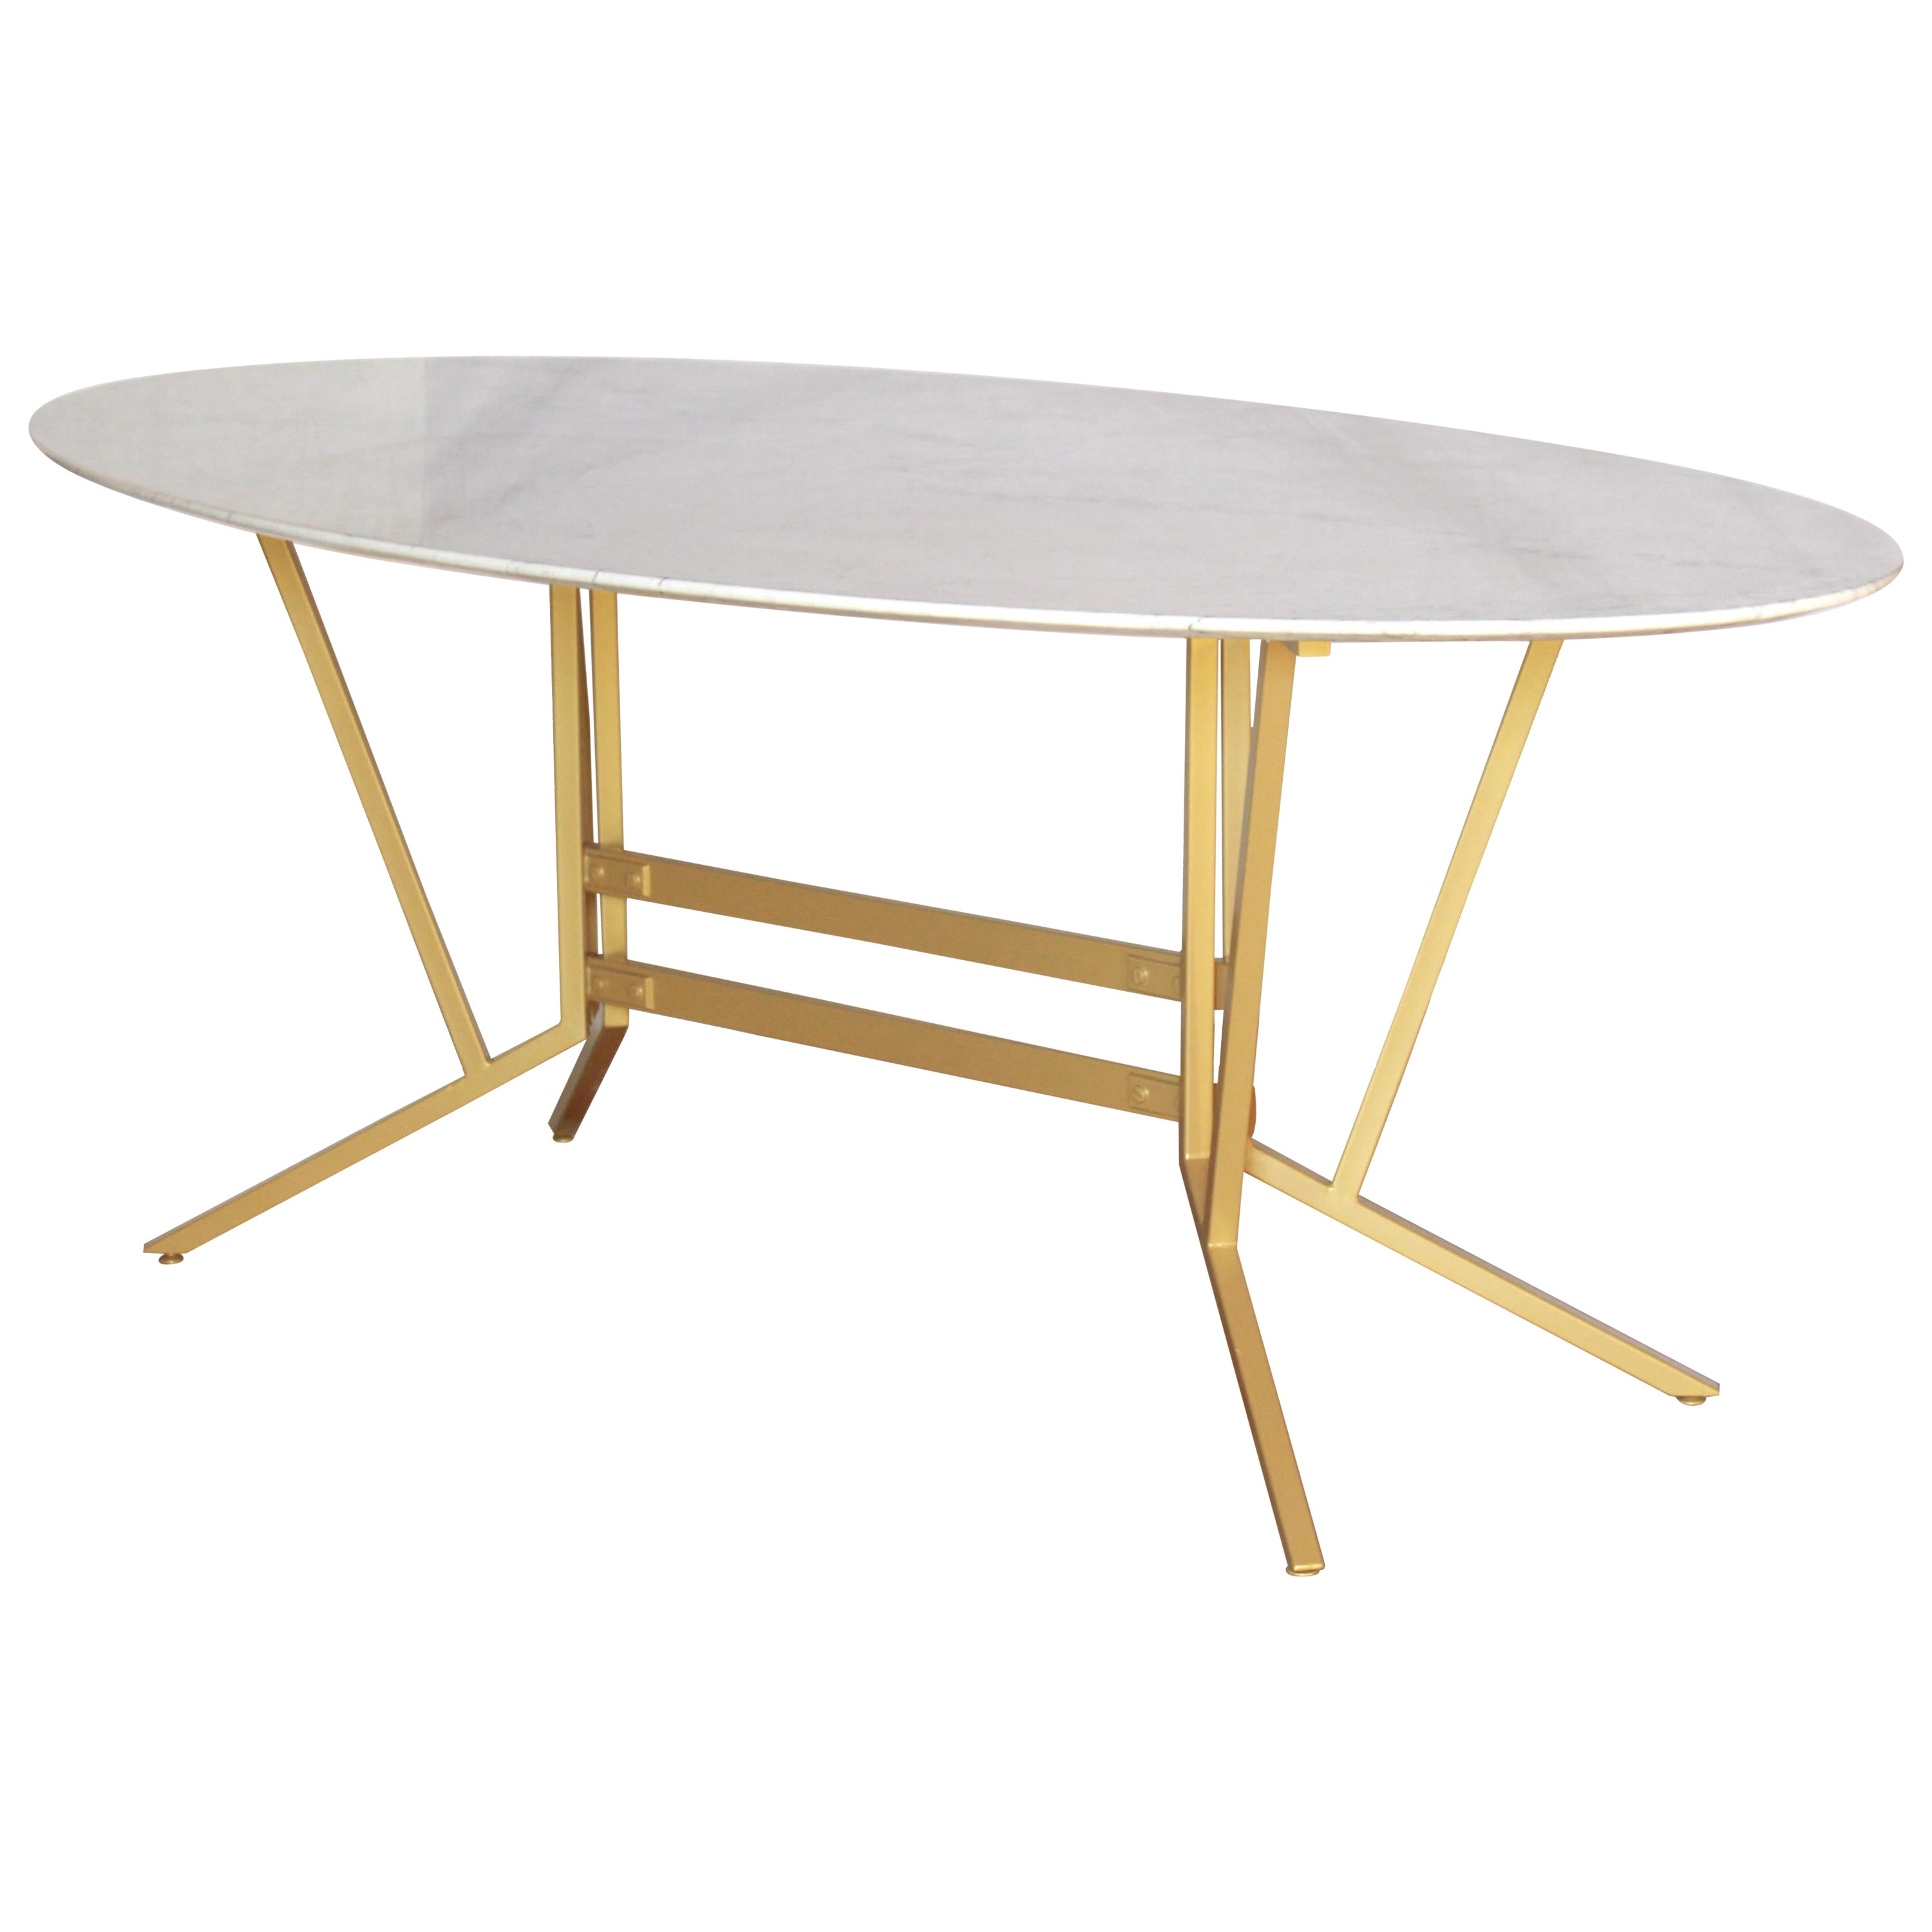 1960s vintage oval Carrara Marble Dining Table